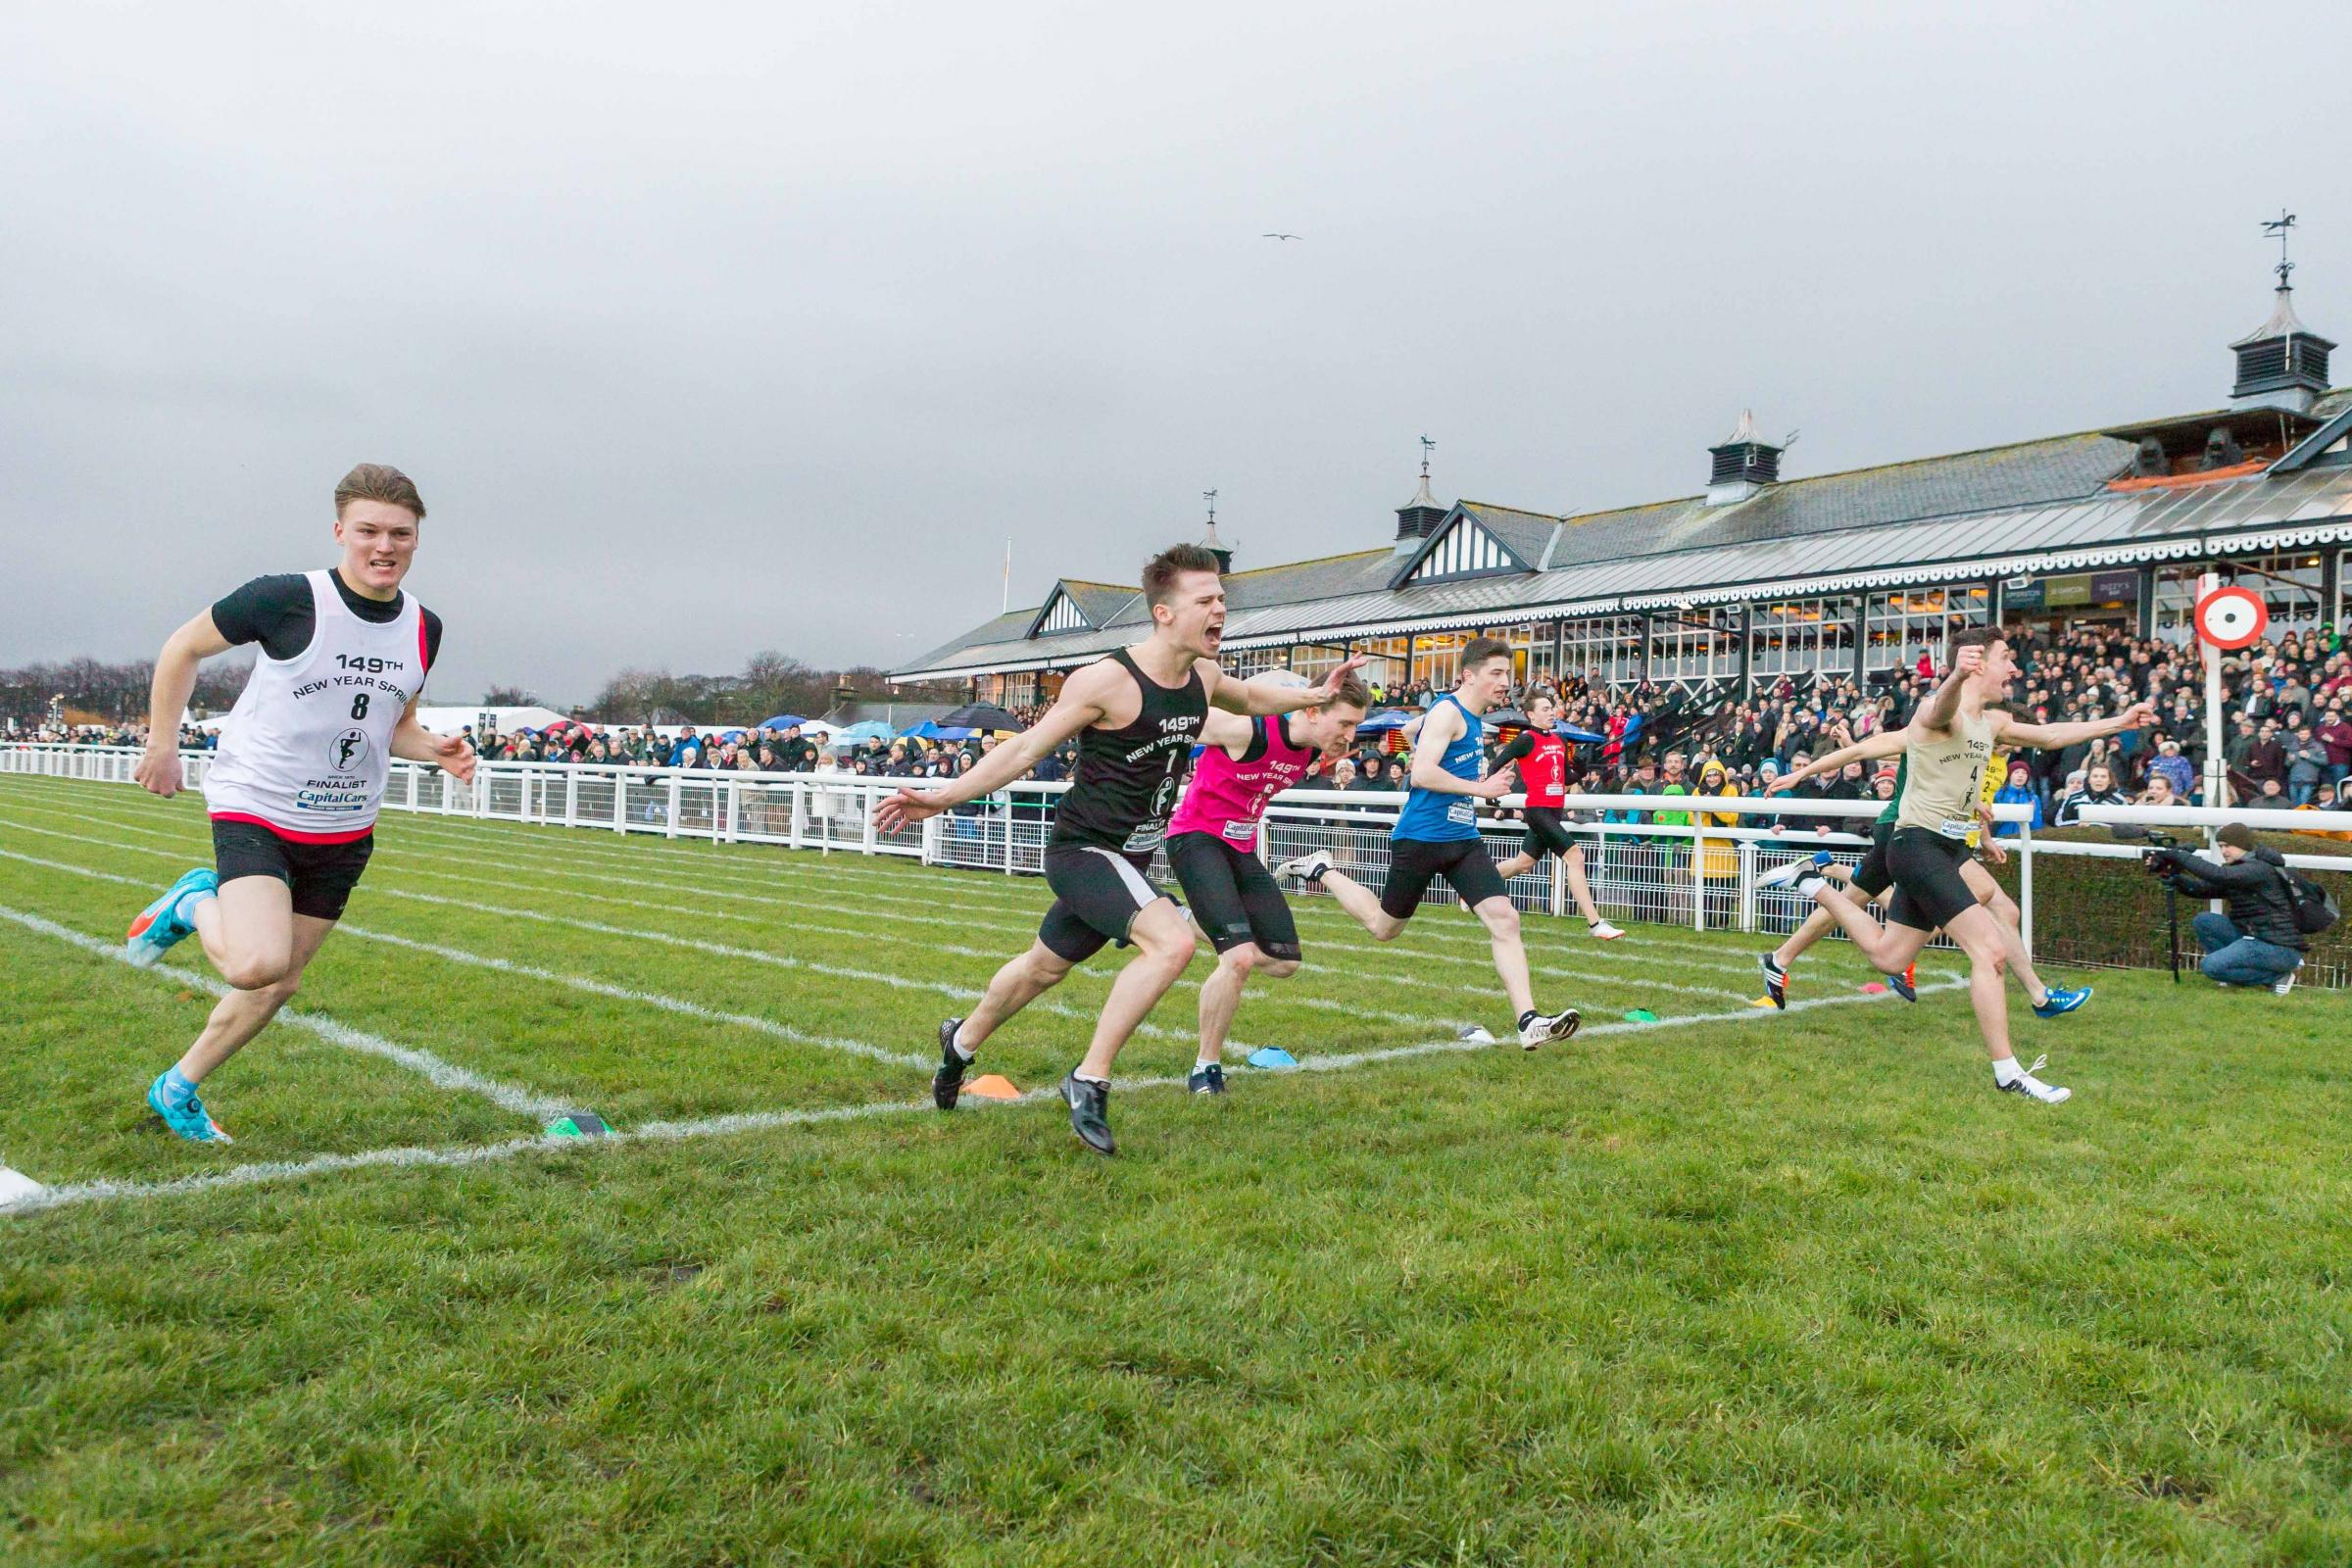 East Kilbride's Callum McWilliams won the 2018 New Year Sprint.